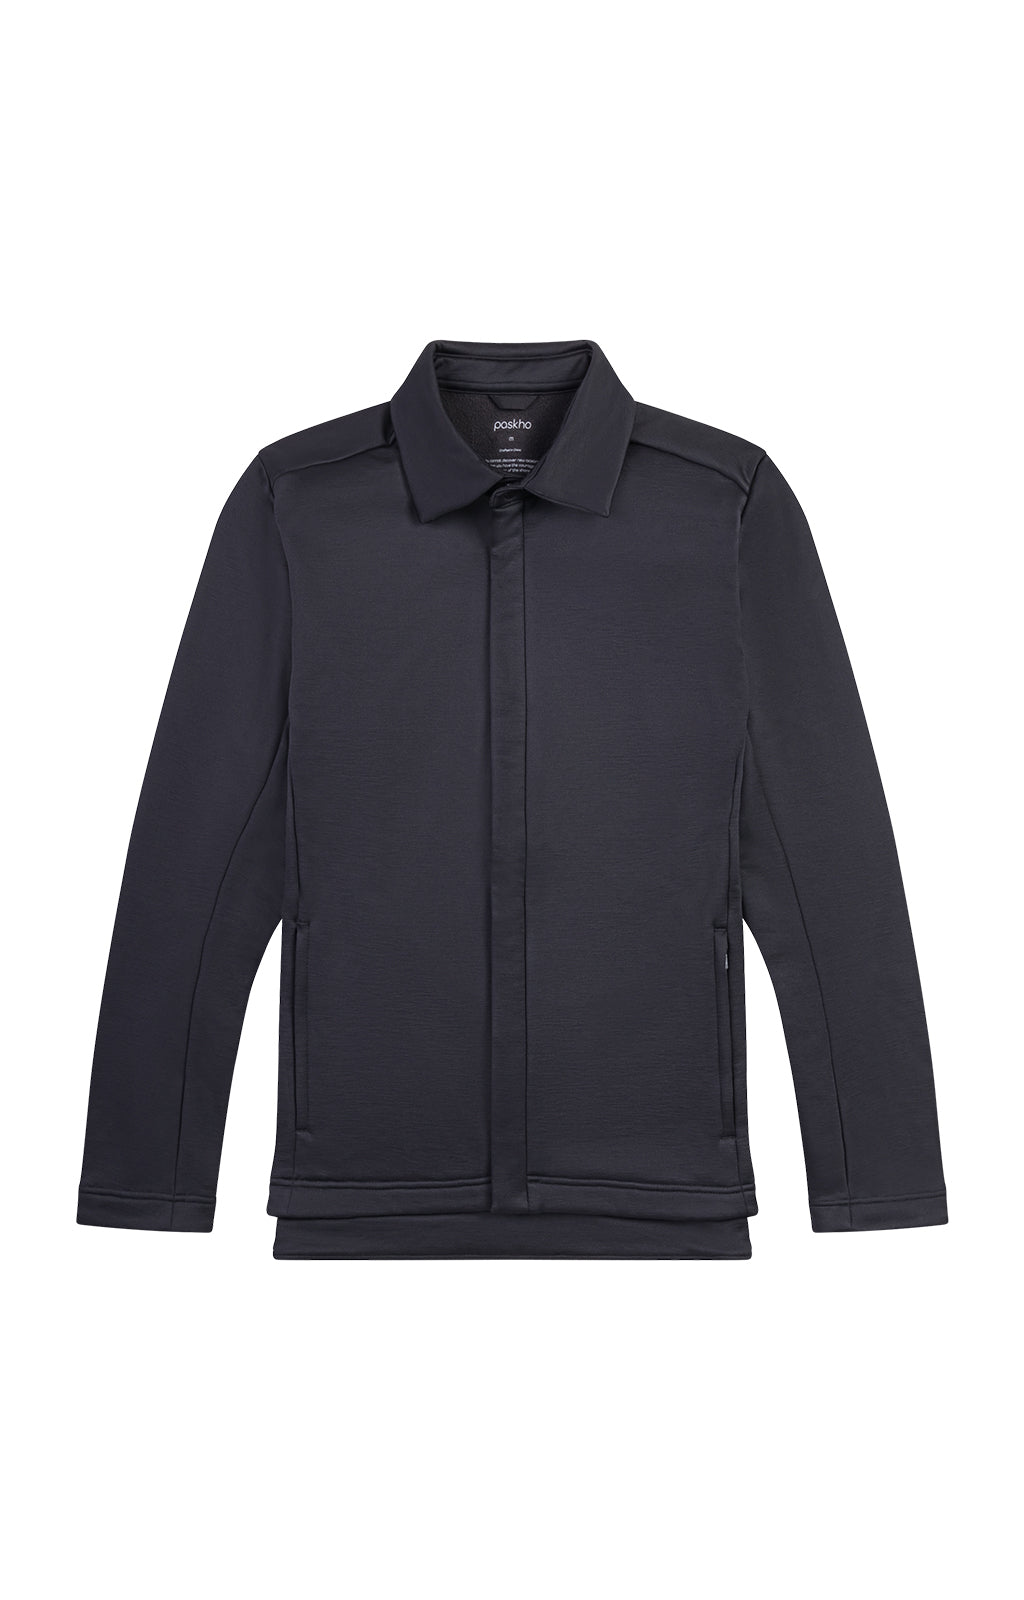 Men's Possibilities - The Ultimate Tech Travel Jacket in BLACK